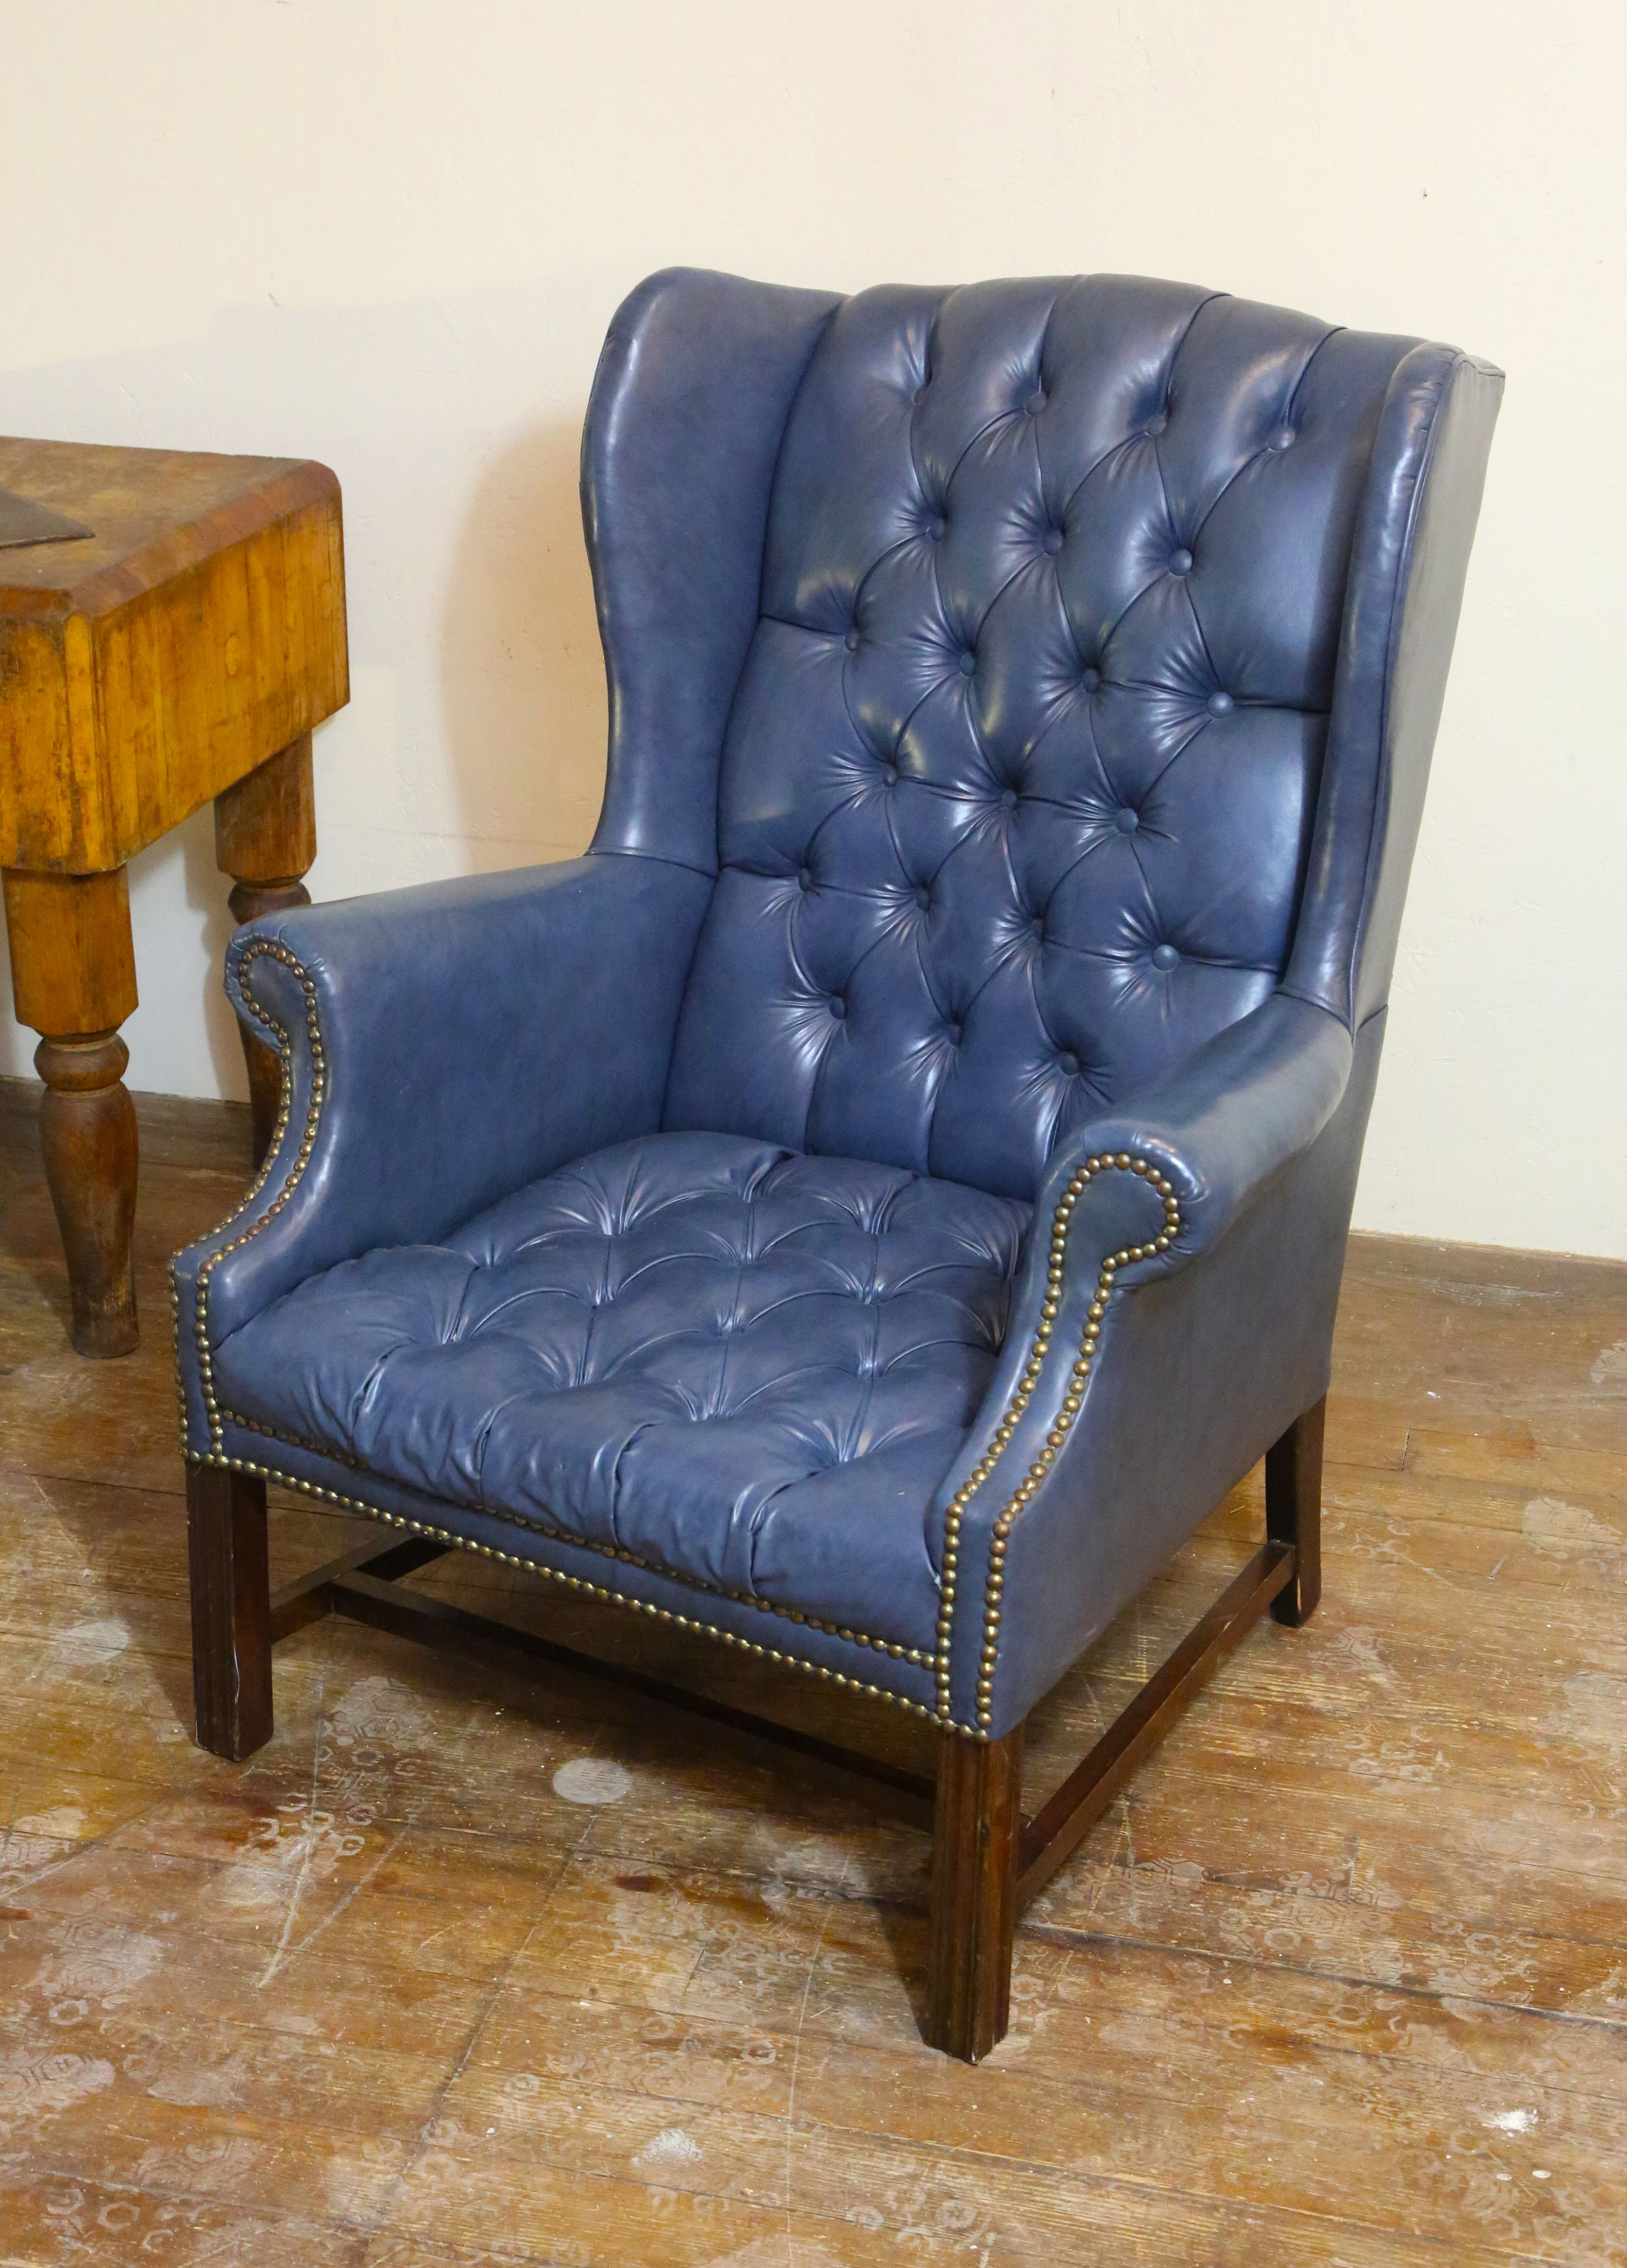 Beautiful Blue Tufted Button Wingback Chair For Sale Now In My Ebay